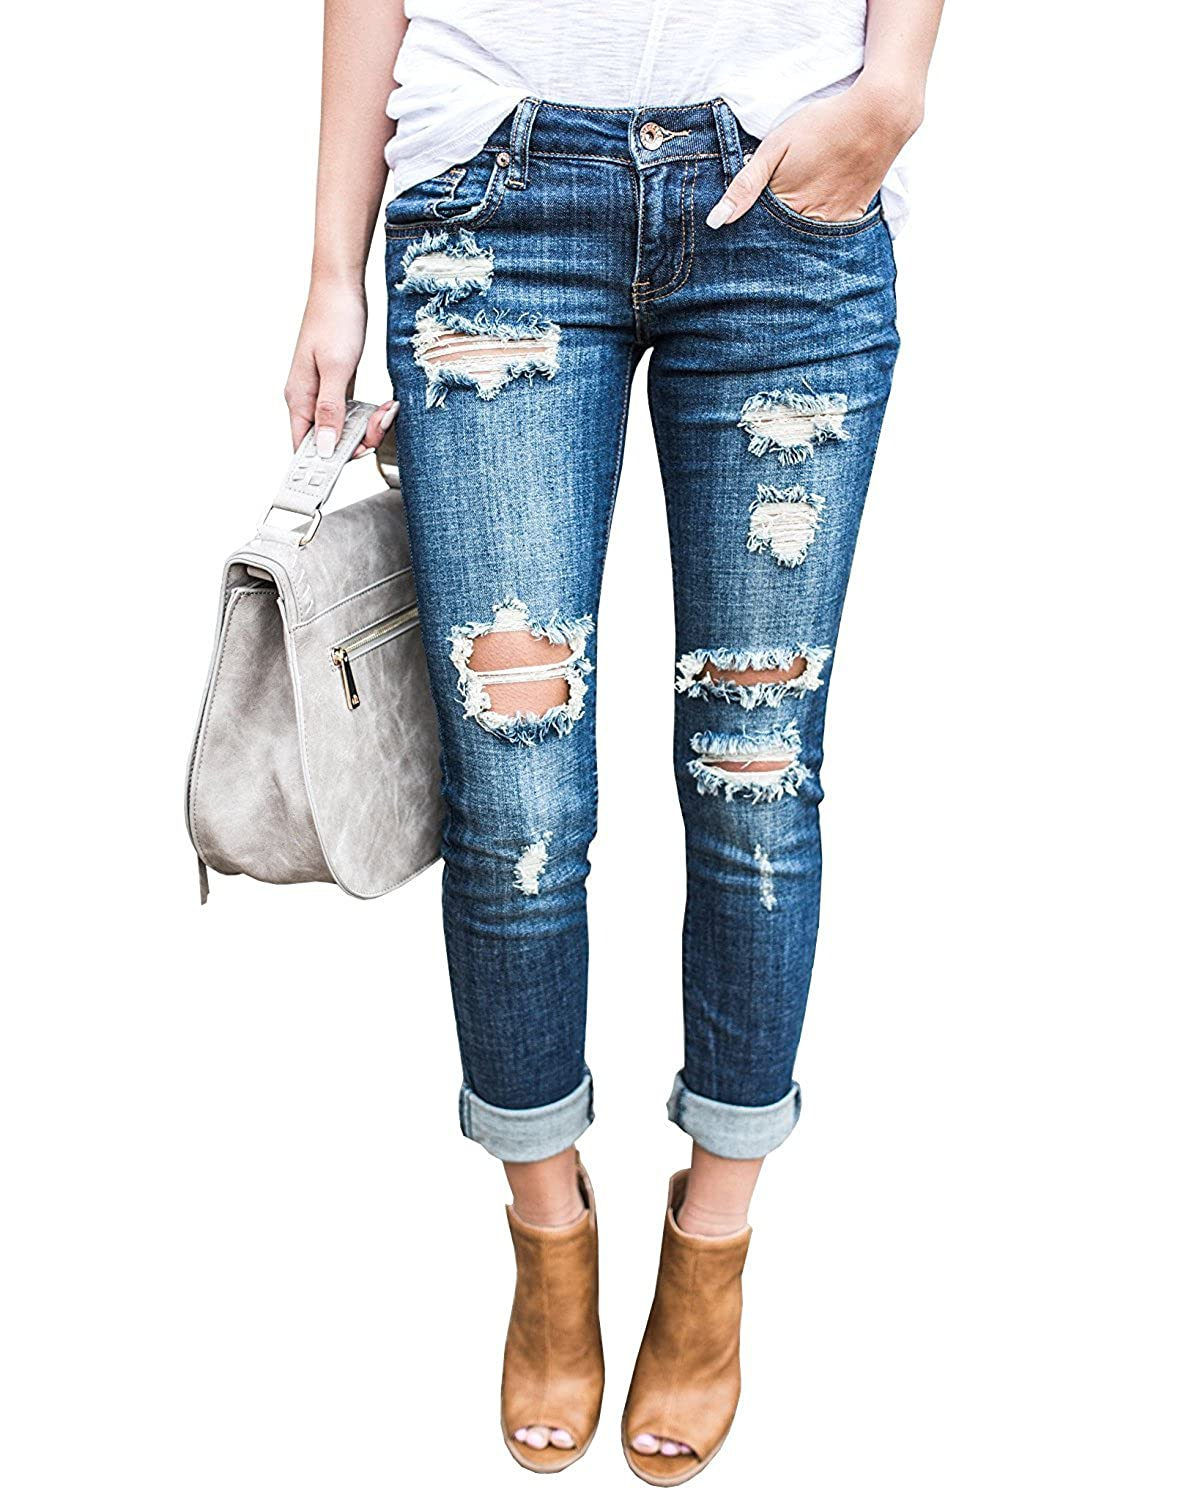 9561d34e7e Feature: Slim fit stretchy skinny jeans with ankle roll up, casual  destroyed boyfriend ankle jeans for women, heavy distressed design, mid rise  jeans ...